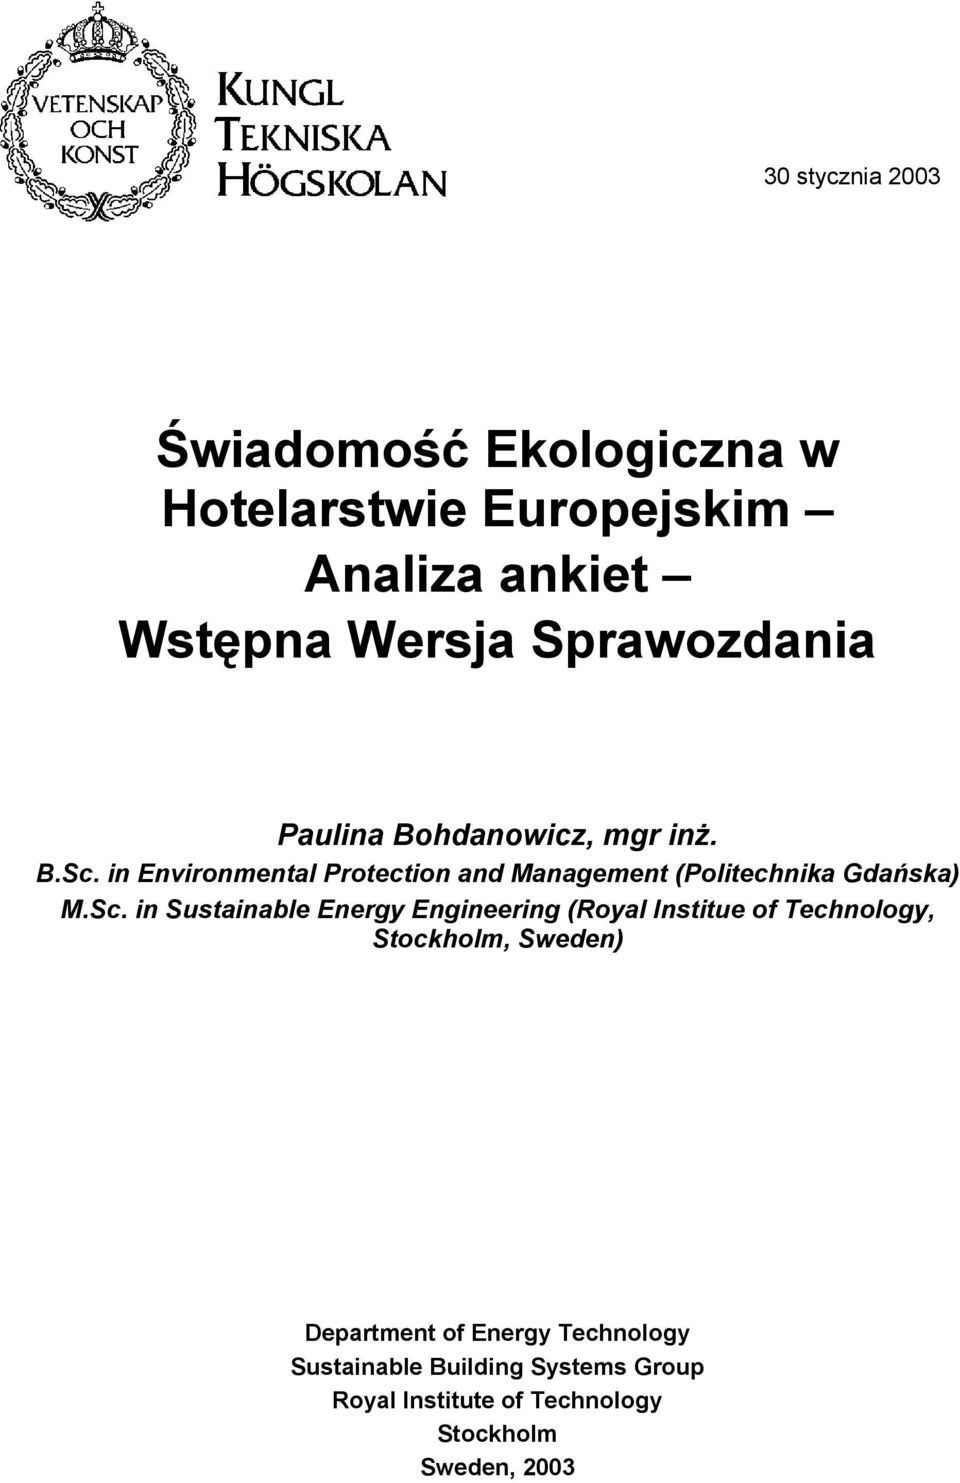 in Environmental Protection and Management (Politechnika Gdańska) M.Sc.